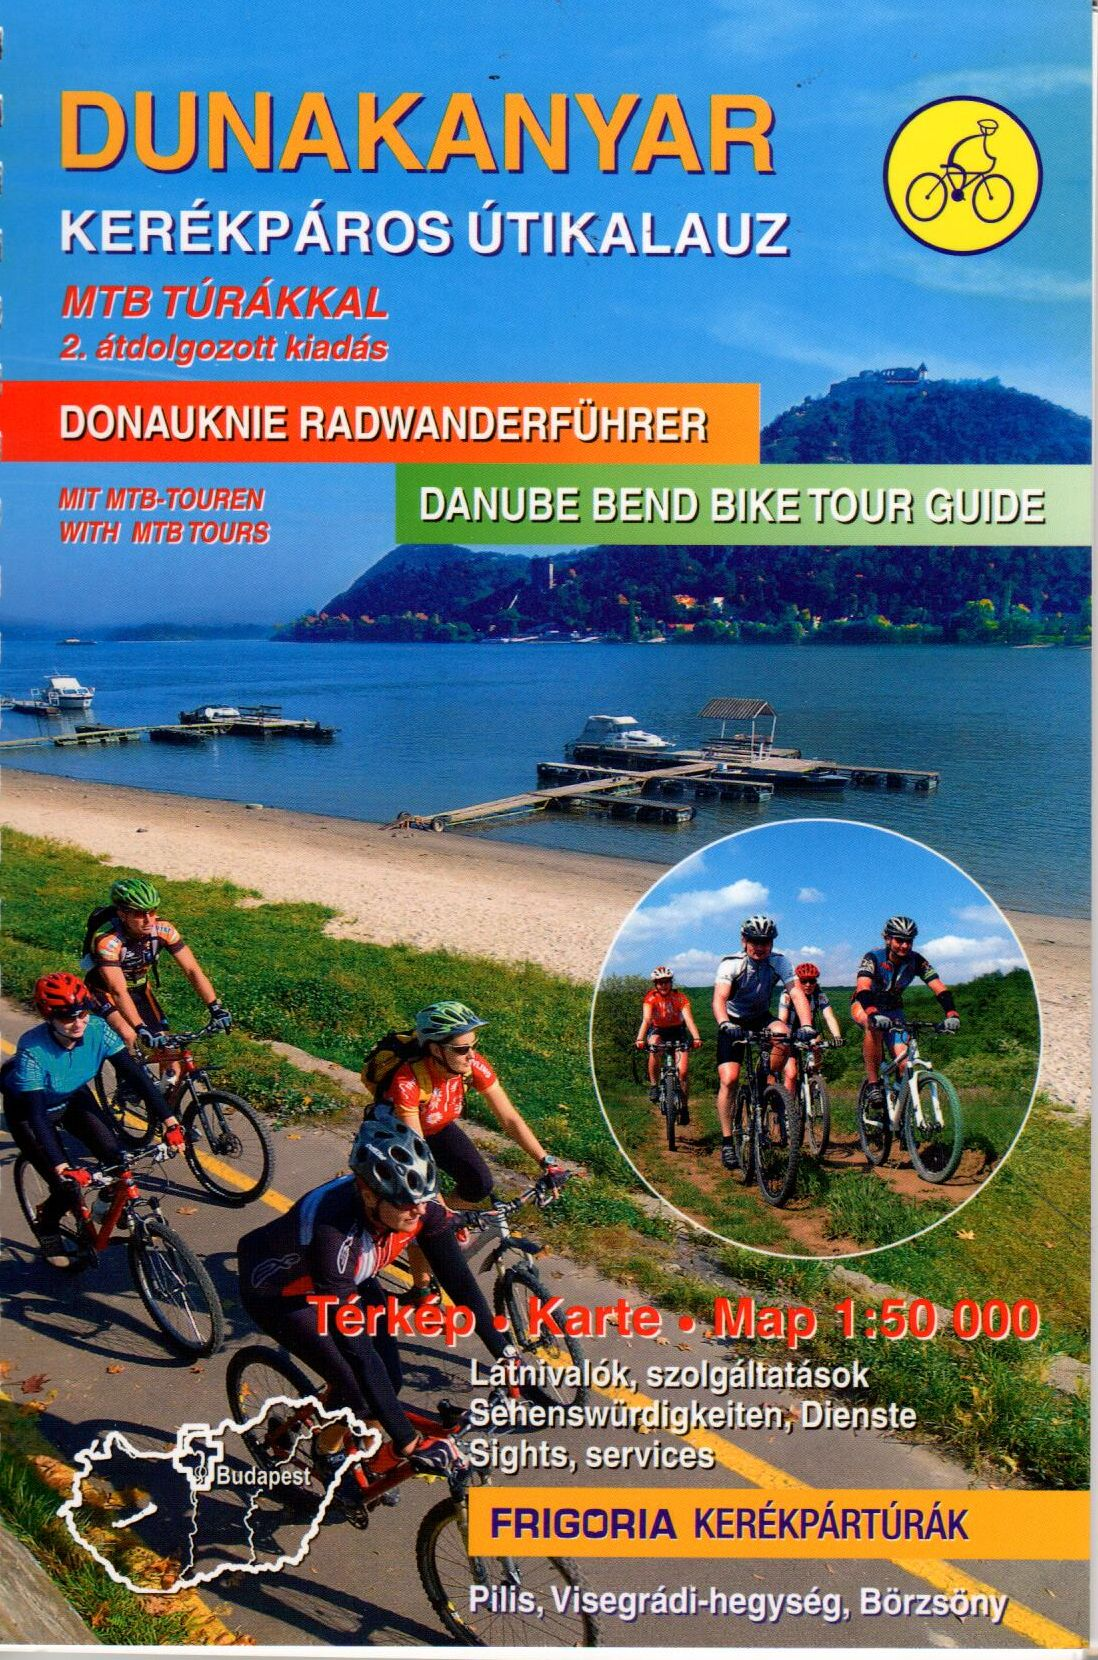 Danube bend (Pilis, Börzsöny, Naszály) biking atlas with spiral binding. Text in English and German, the legend includes alo Dutch explanations.